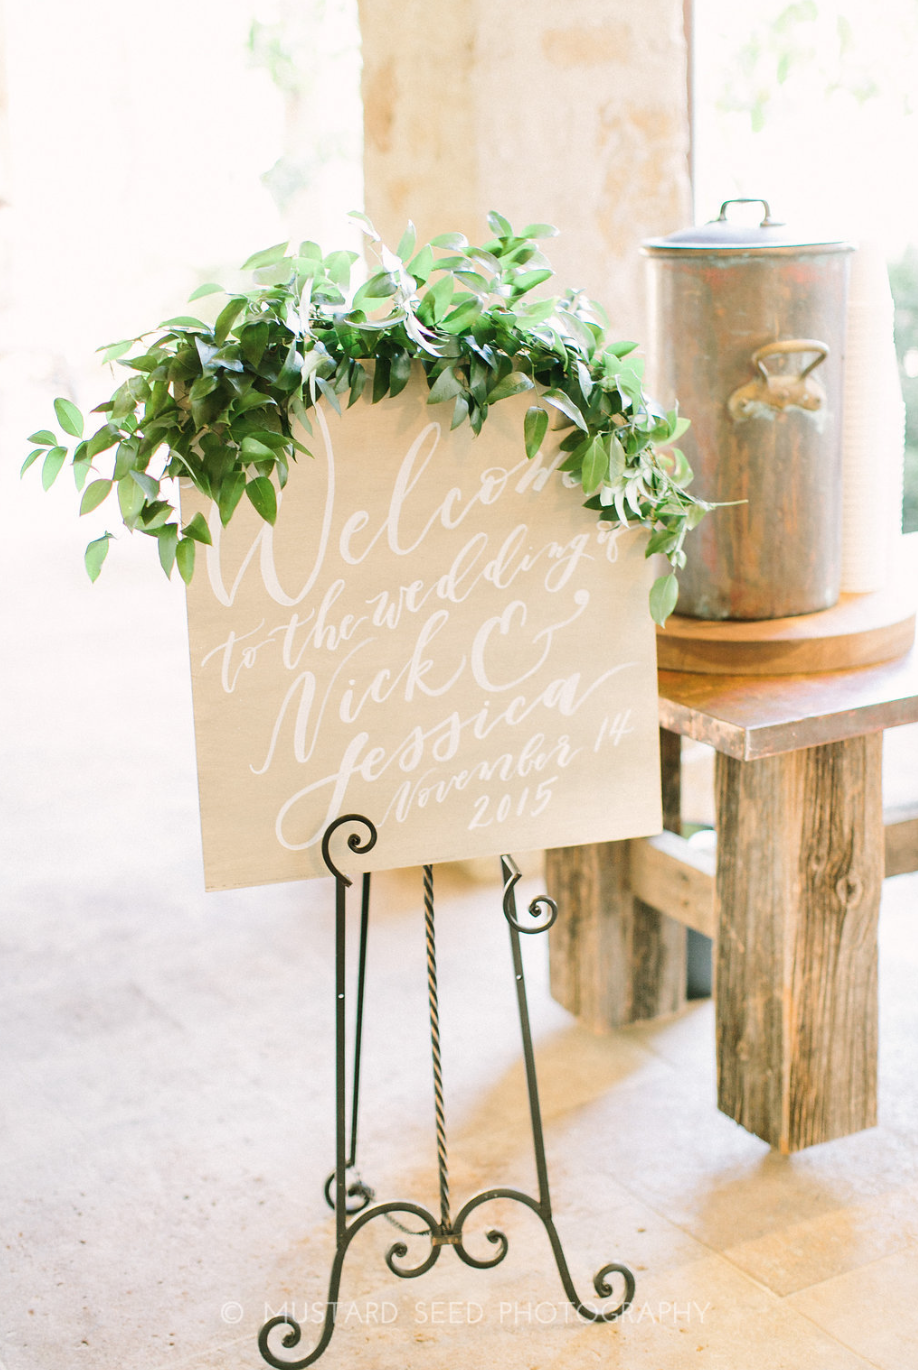 Calligraphy welcome sign draped with greenery by Maxit Flower Design in Houston, TX.